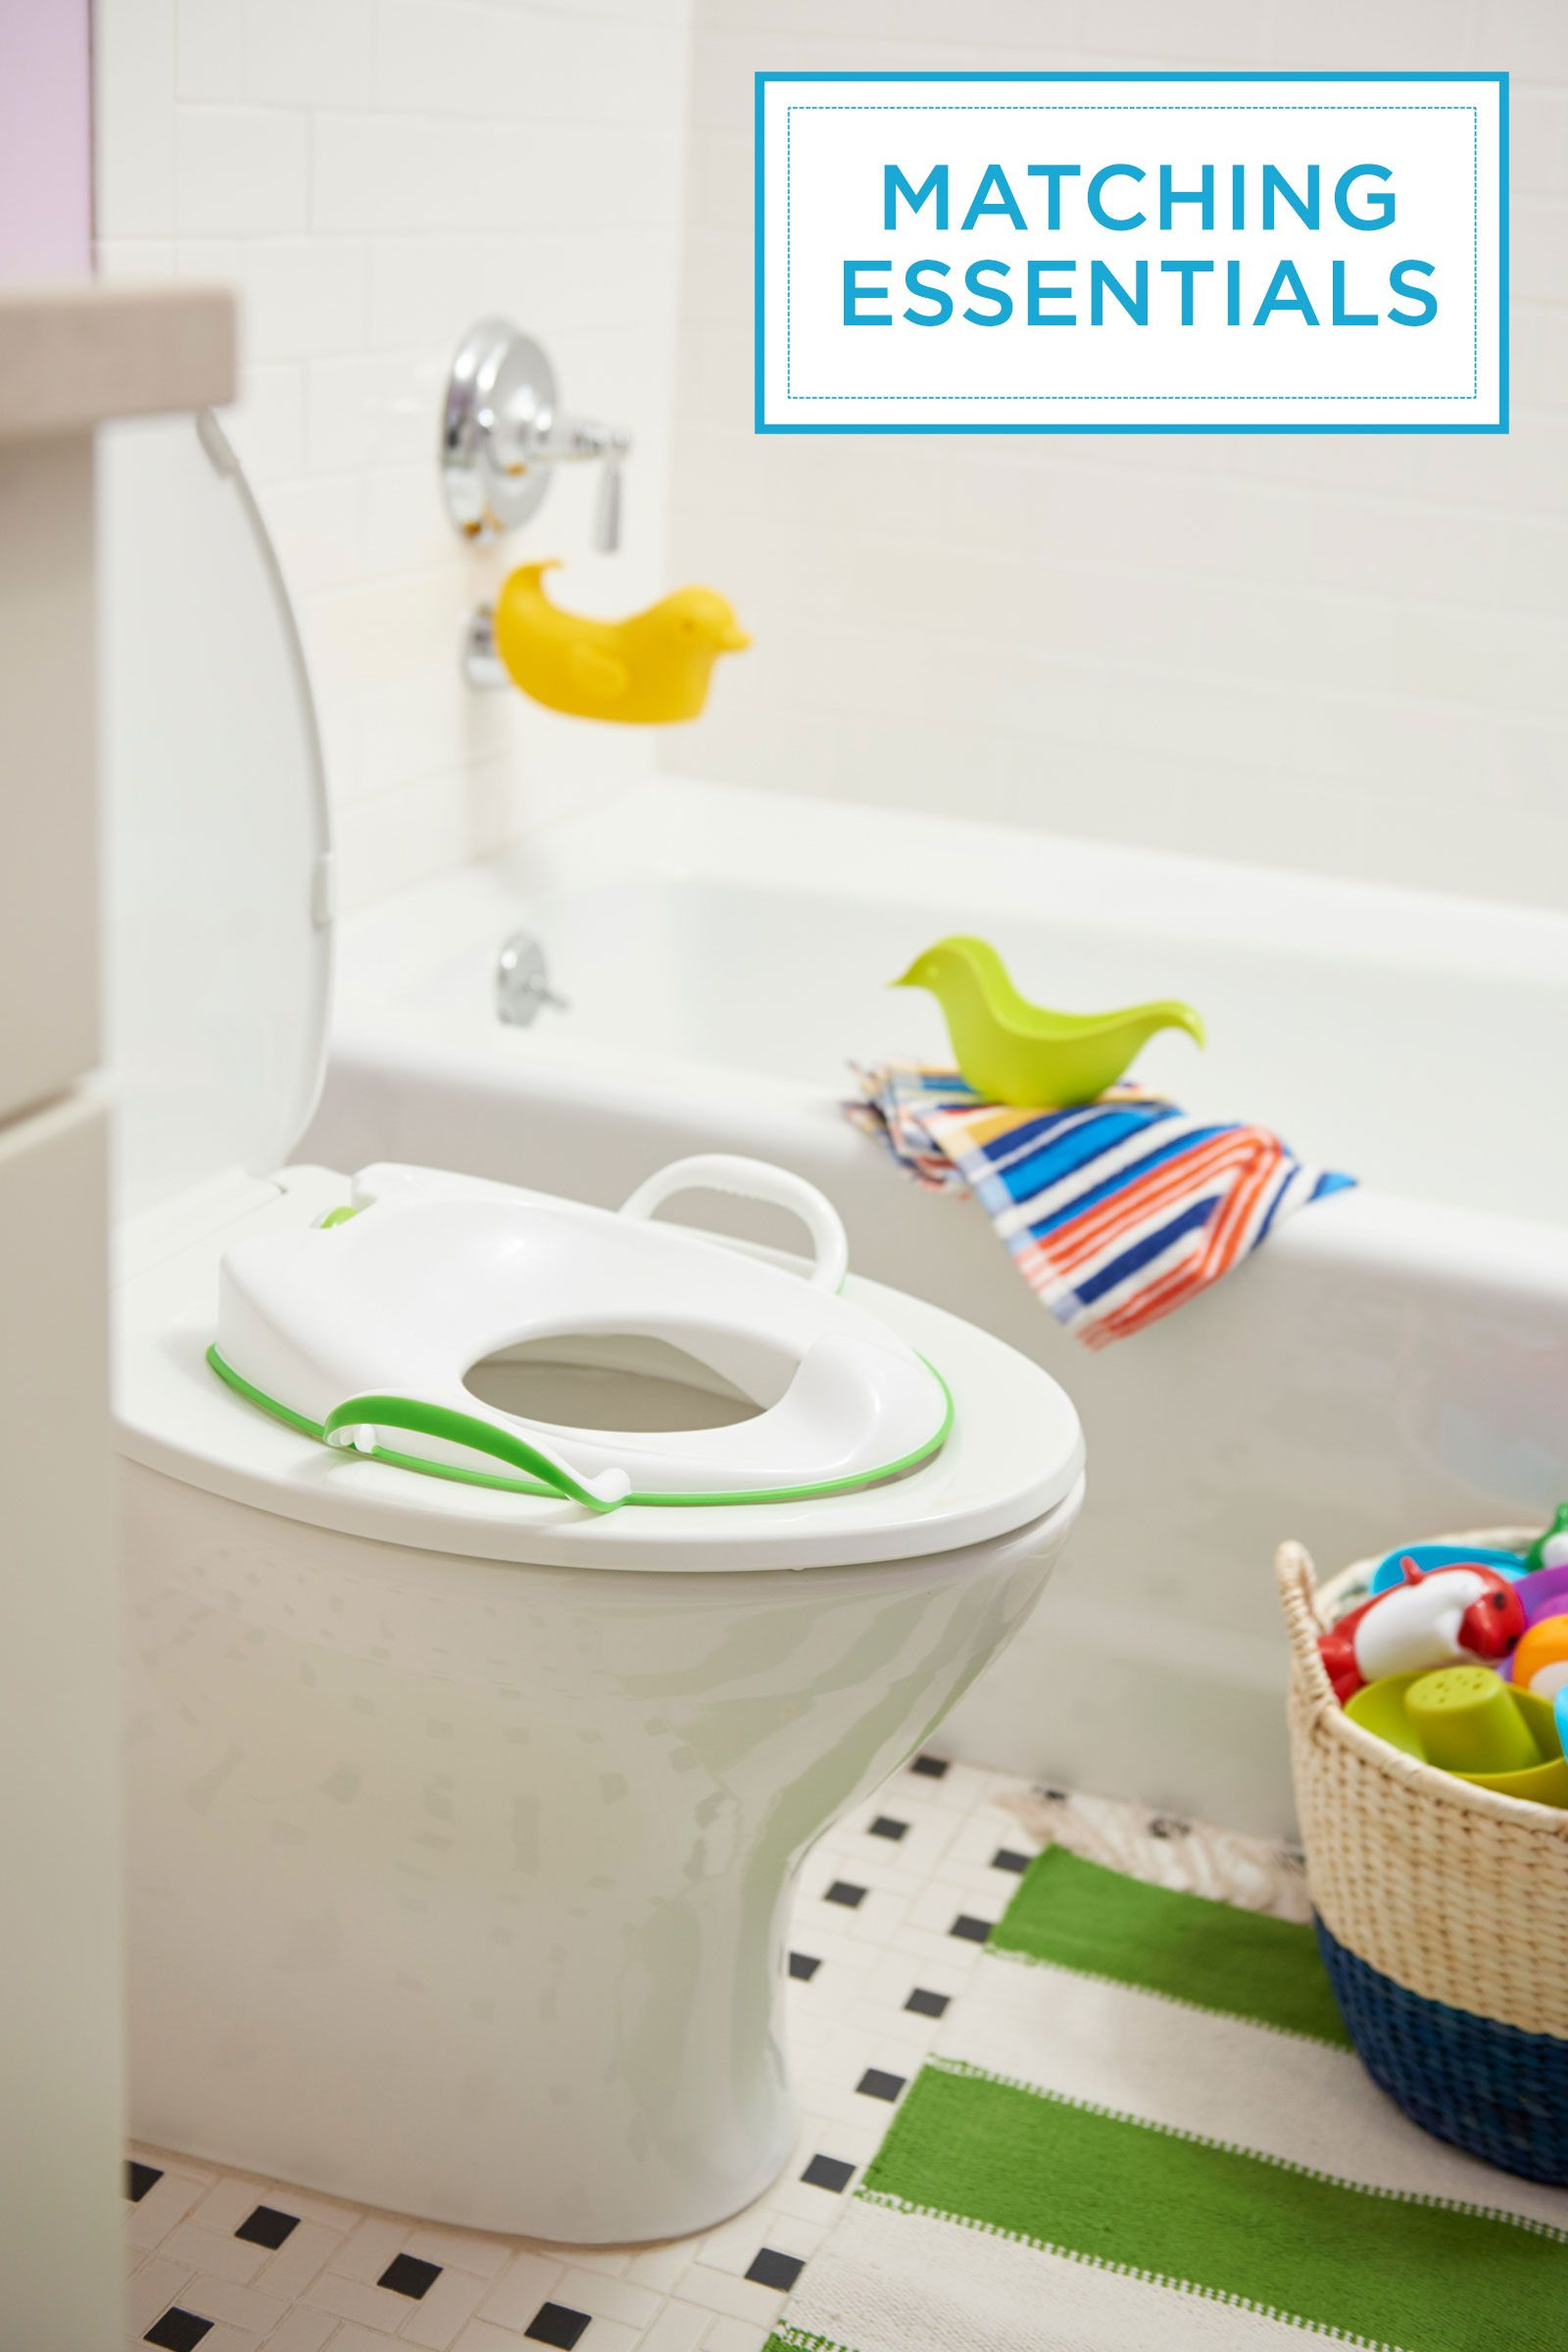 """<p>Potty training is easier when your kiddo <em>likes</em> being in the bathroom. A fun rug that matches his potty seat helps make the room his own. (Tuck a step stool beneath the vanity to give your little one access to the toilet and sink.)</p><p><em>Potty seat, <a href=""""http://www.munchkin.com/"""" target=""""_blank"""">Munchkin.com</a>&#x3B; duck spout and bath toys, <a href=""""http://www.skiphop.com/"""" target=""""_blank"""">SkipHop.com</a></em><br></p>"""